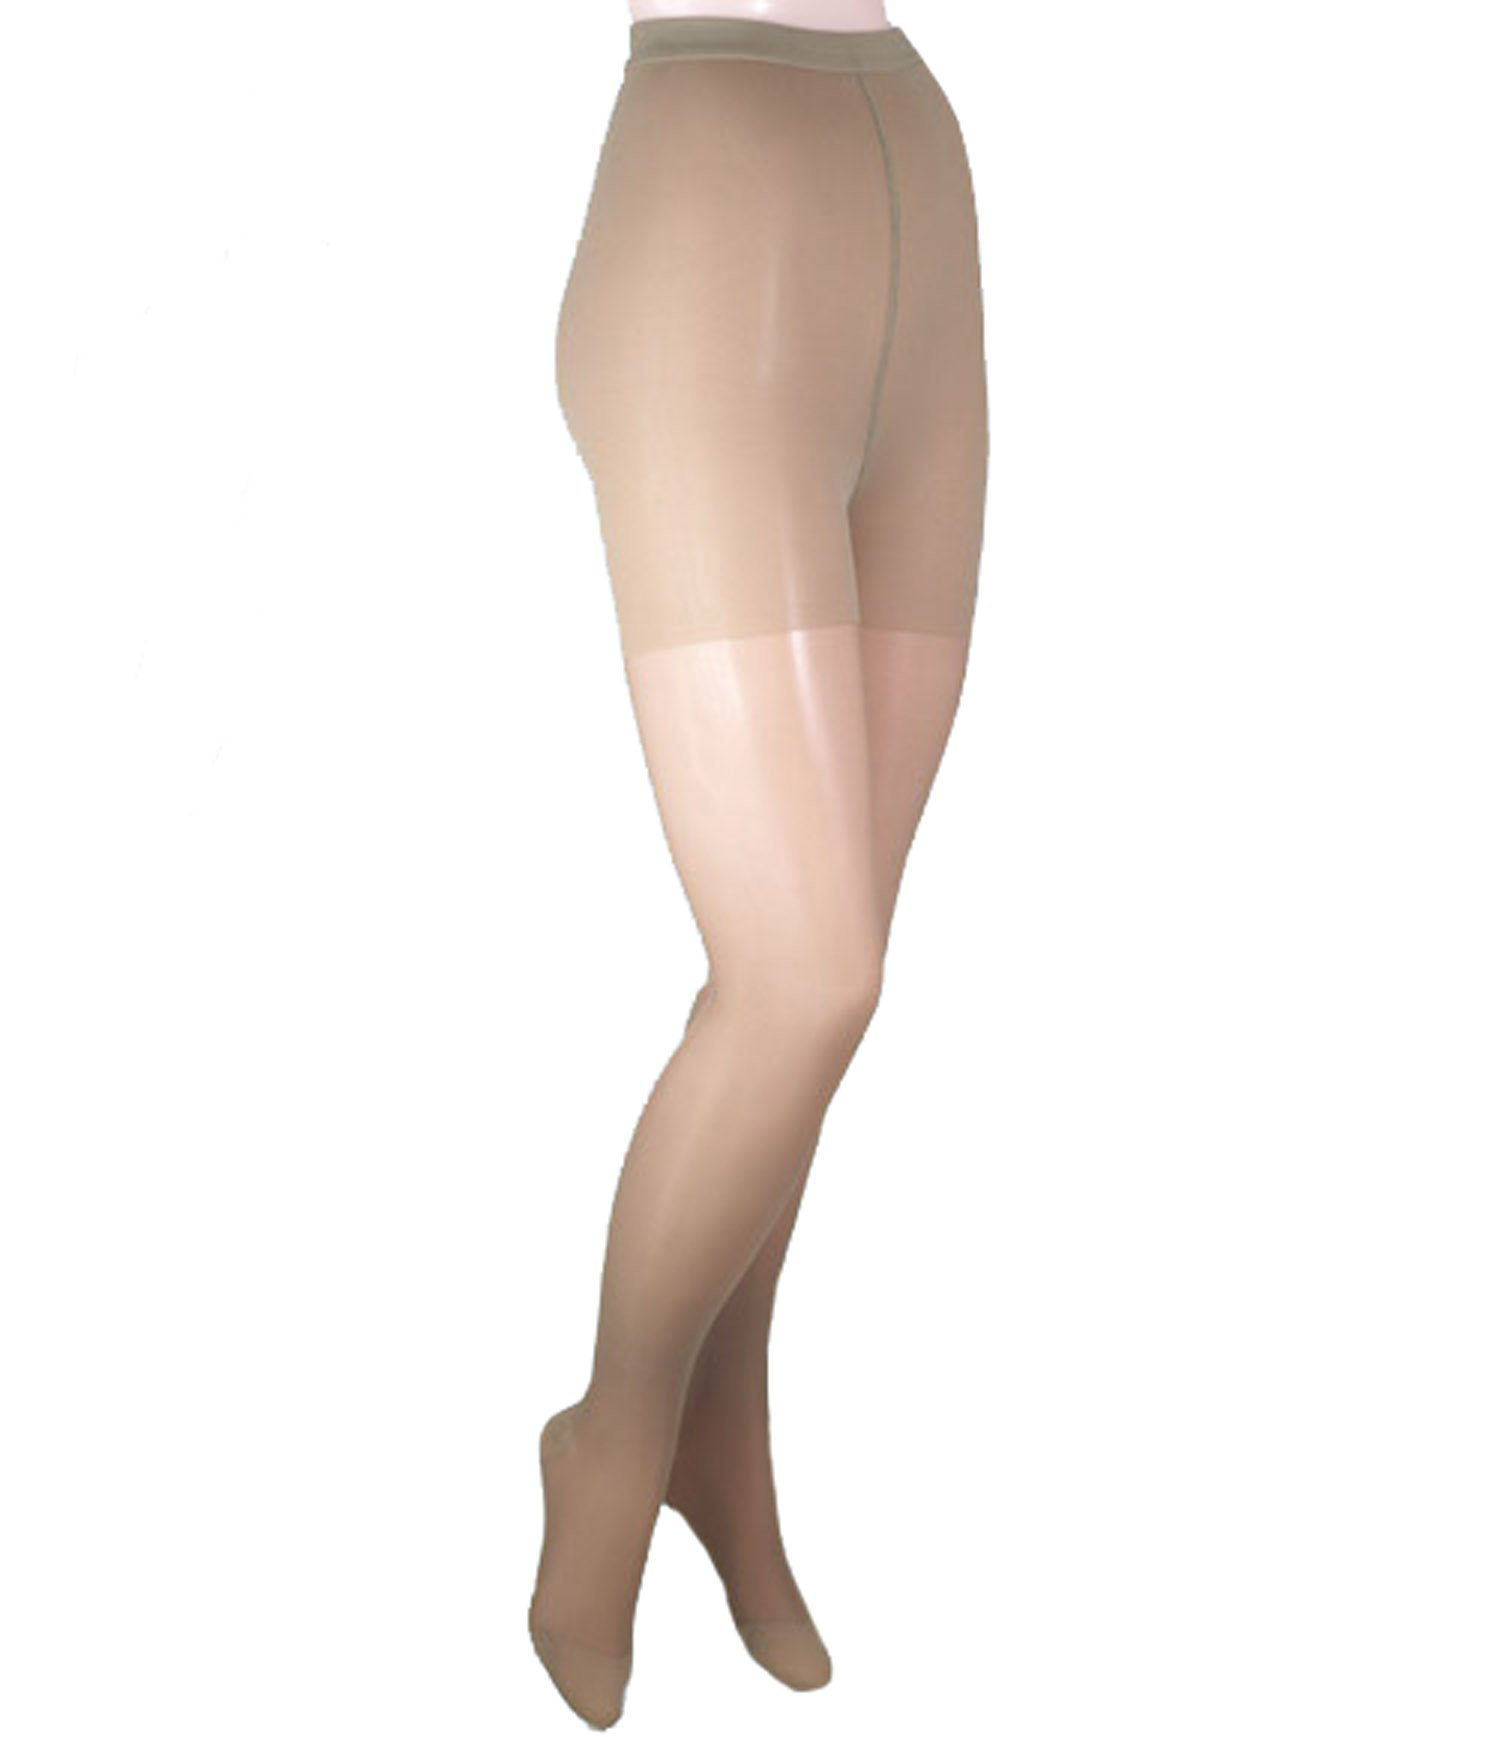 ITA-MED Sheer Pantyhose, Compression (20-22 mmHg) Beige, X-Tall, 2 Count